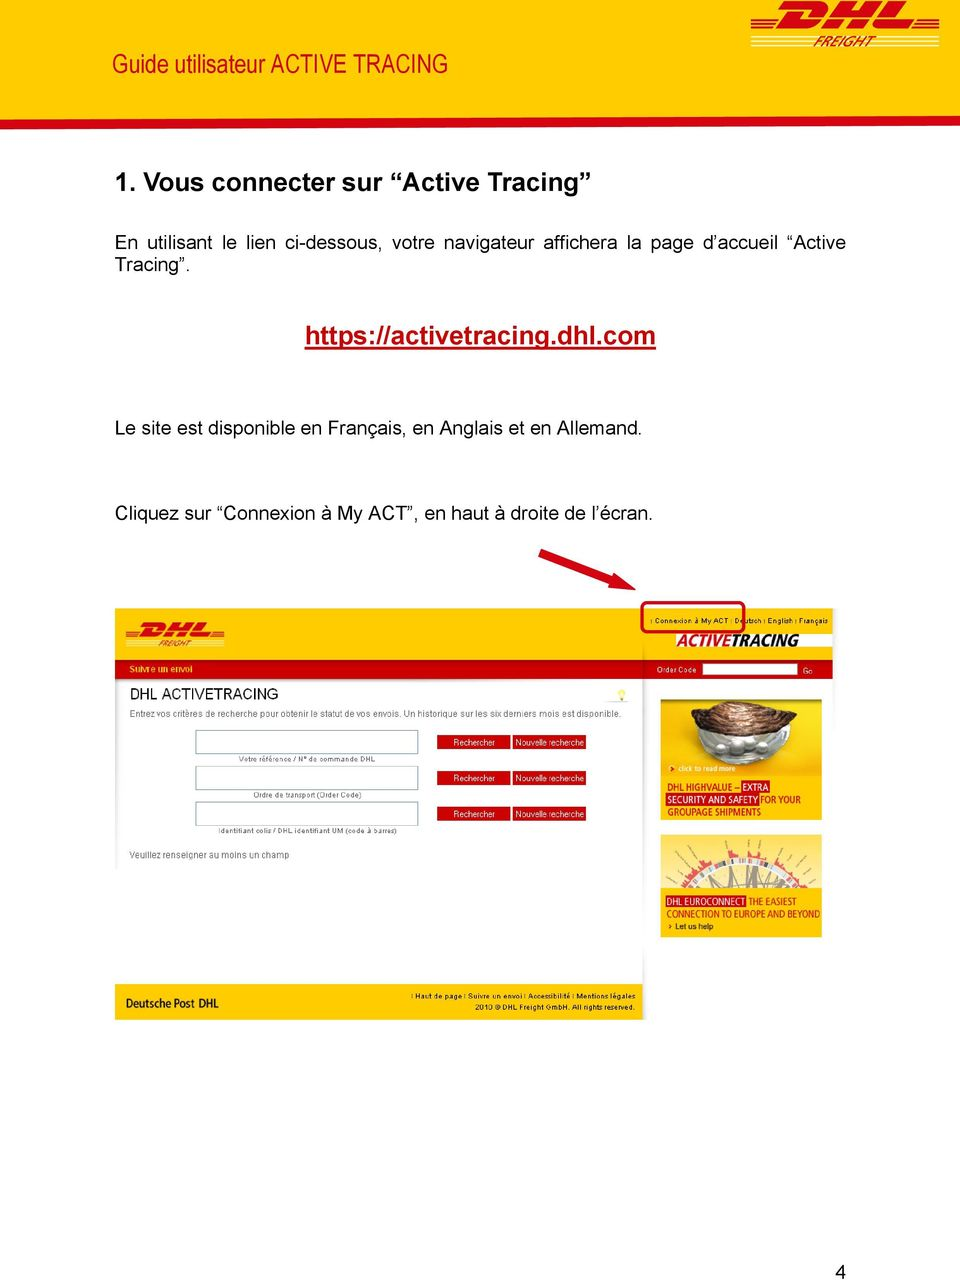 navigateur affichera la page d accueil Active Tracing. https://activetracing.dhl.